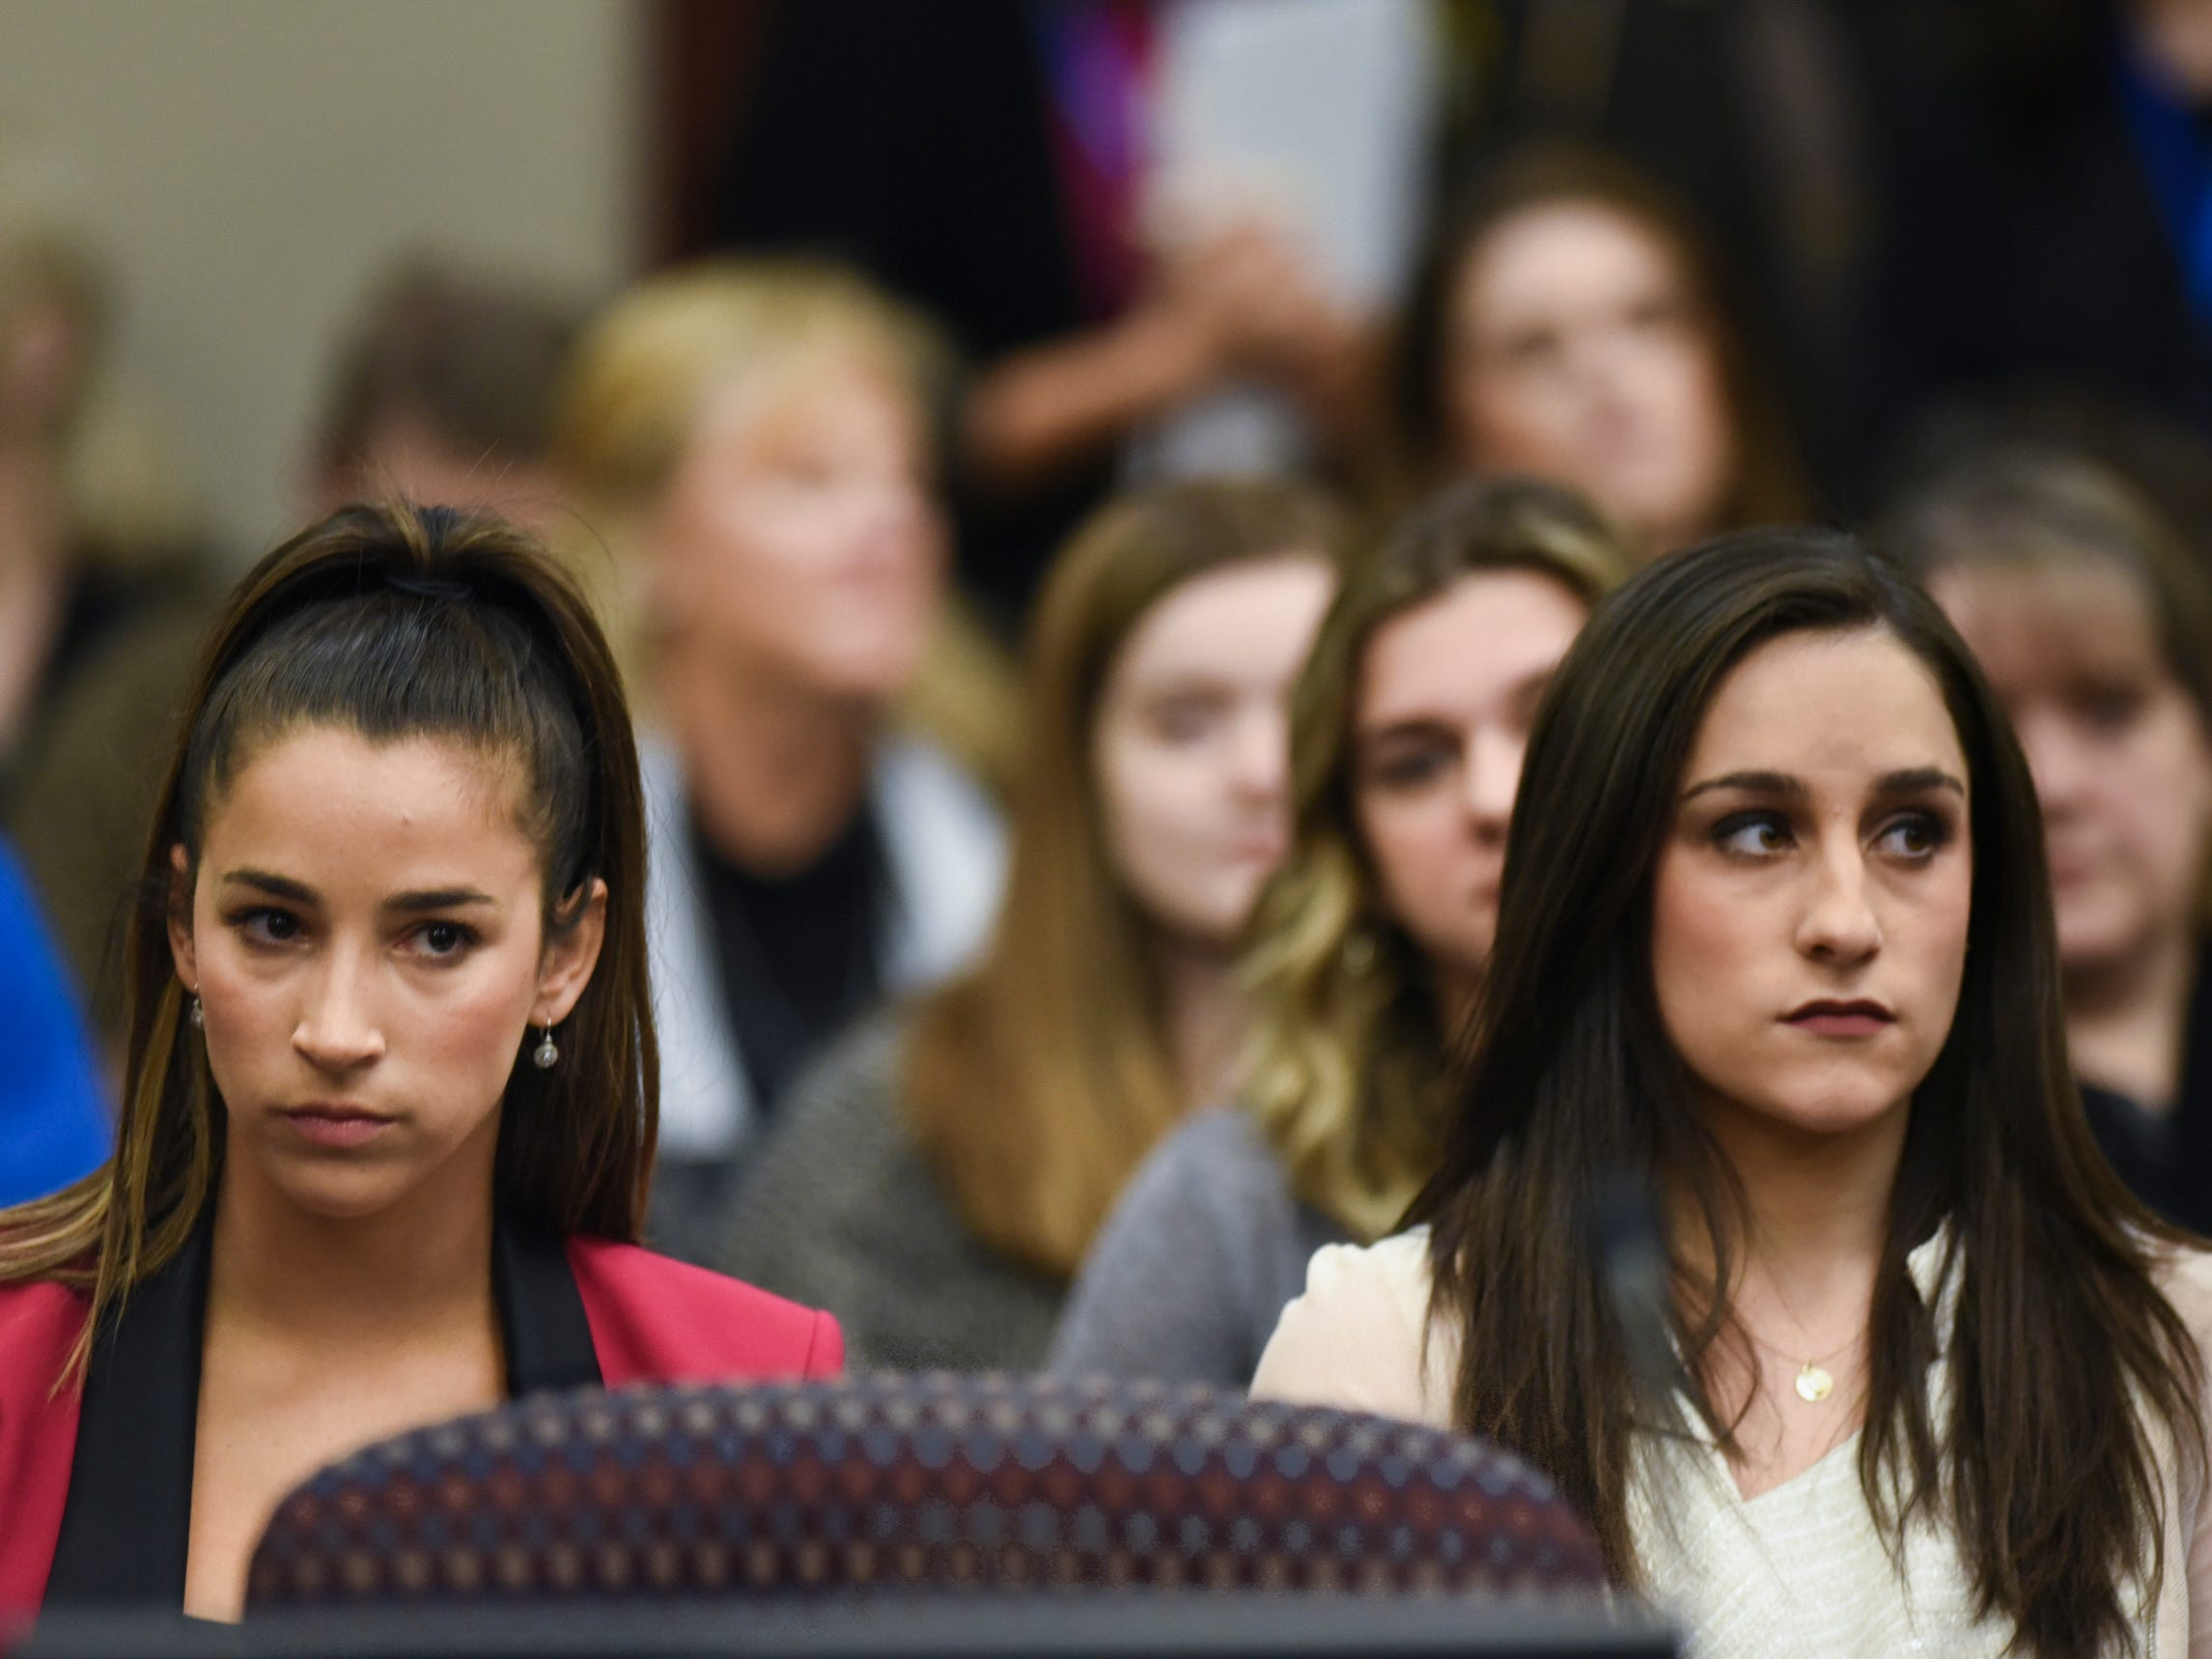 Former Olympians Aly Raisman, left, and Jordyn Wieber sit in Circuit Judge Rosemarie Aquilina's courtroom Friday, Jan. 19, 2018, during the fourth day of victim impact statements regarding former sports medicine doctor Larry Nassar, who pled guilty to seven counts of sexual assault in Ingham County, and three in Eaton County.